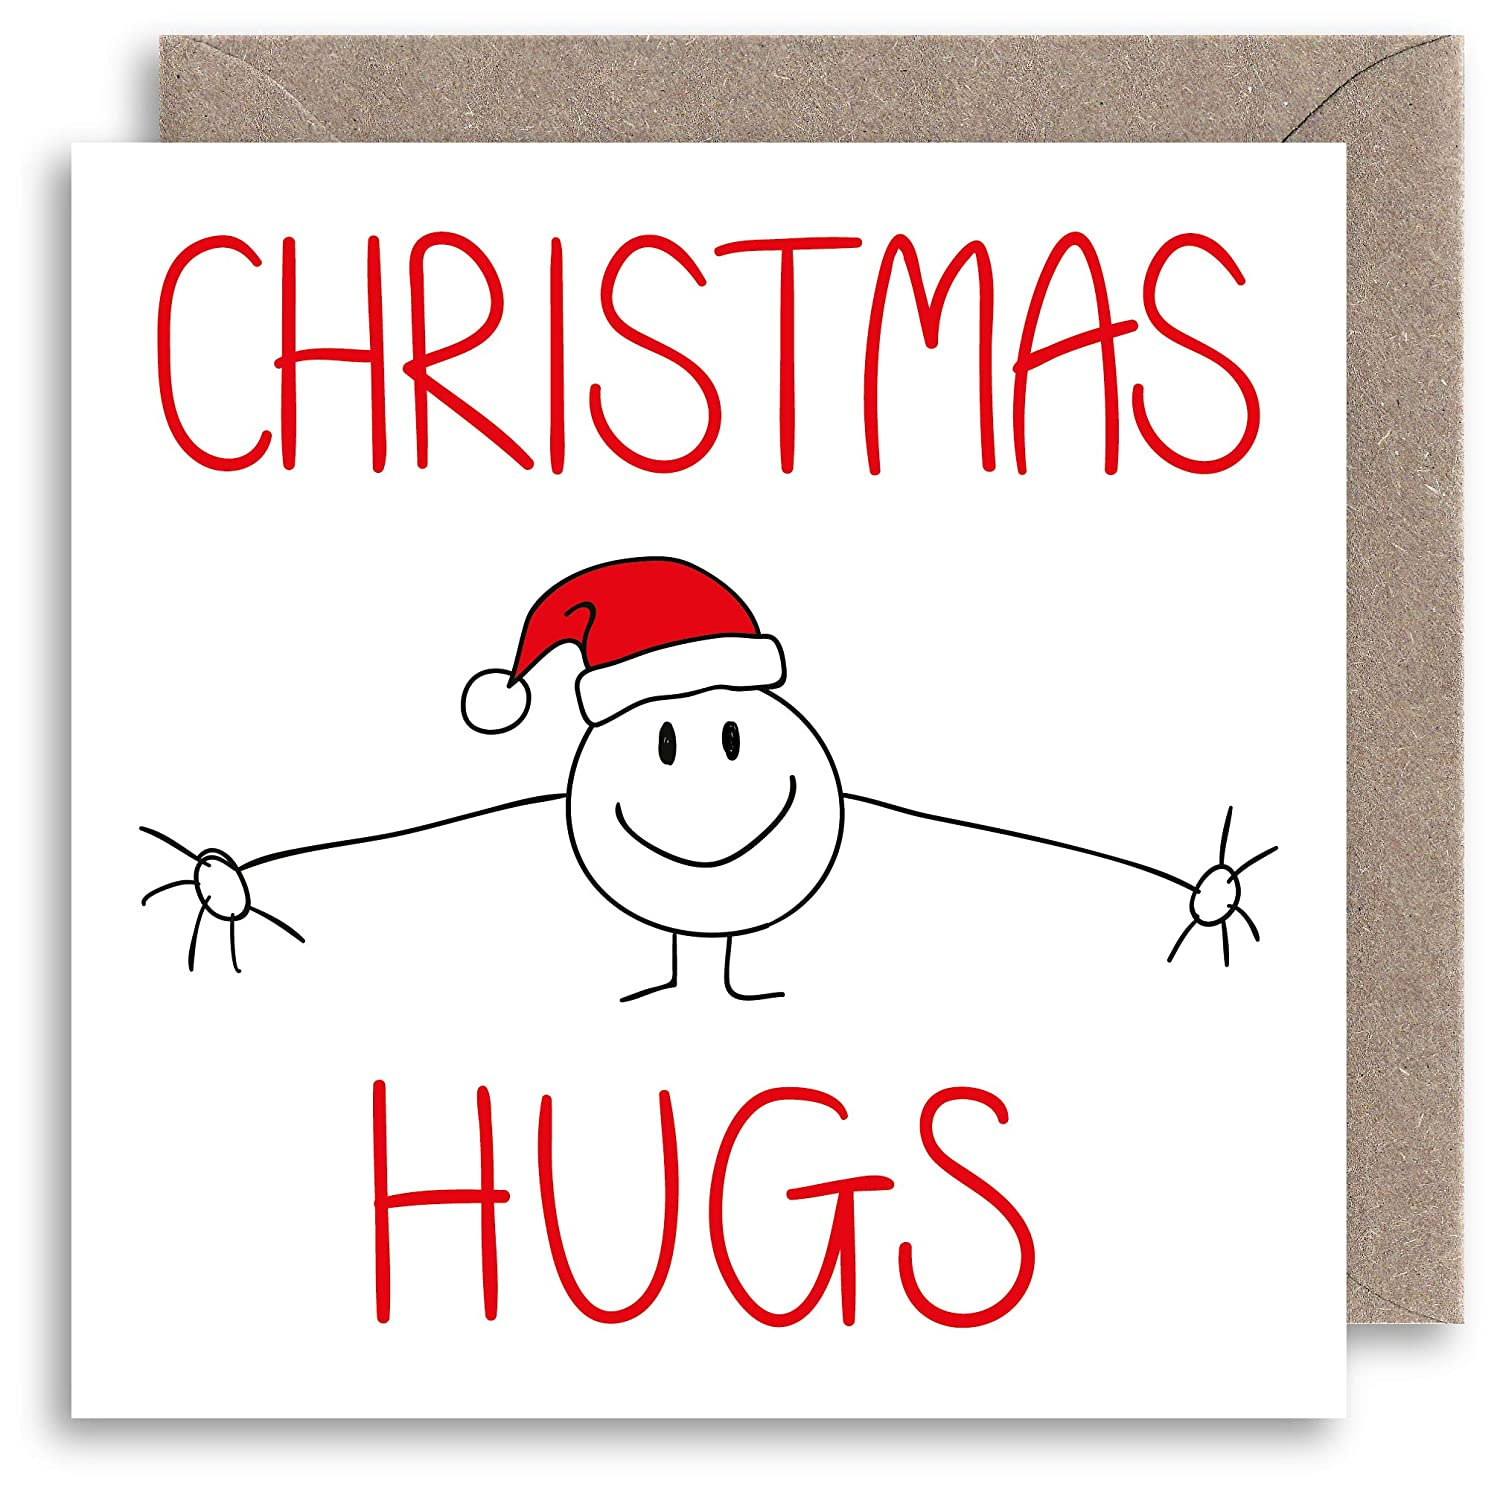 Cute Hugs Christmas Card - Funny Christmas Card - Humour Xmas Card - Alternative Christmas Card - Family Friendship Christmas Card Lazy Mice